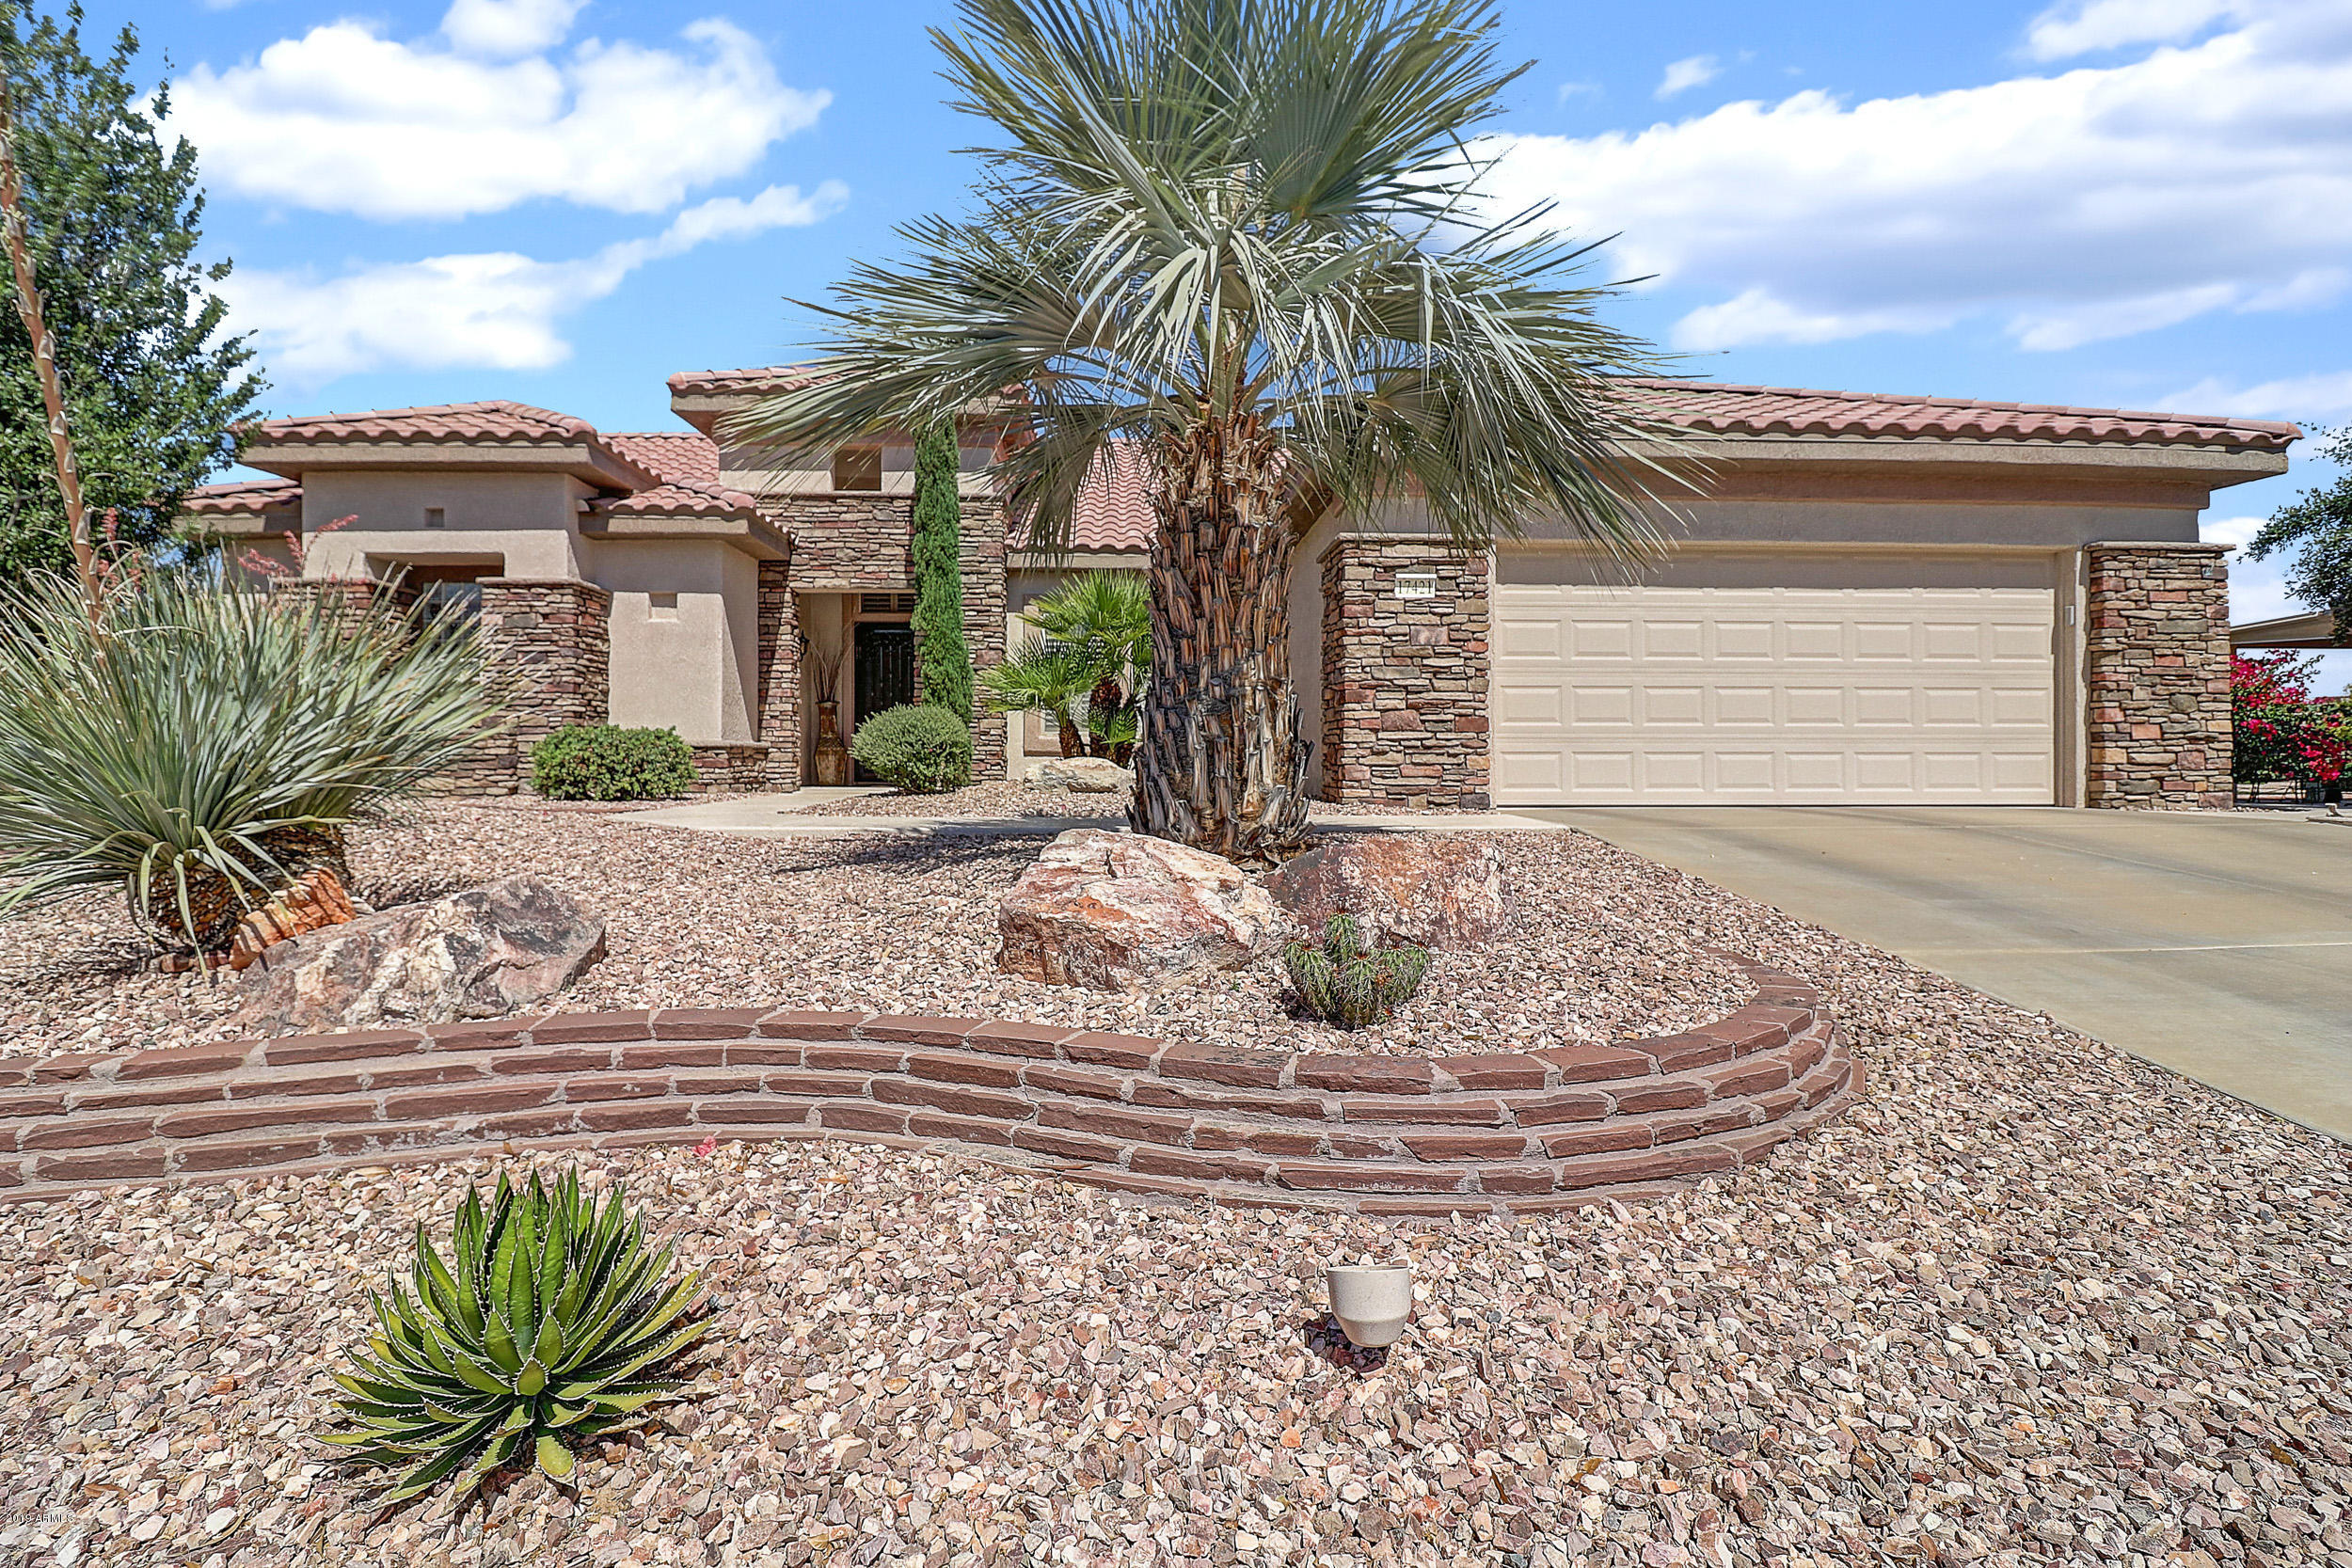 Photo of 17421 N POTOMAC Lane, Surprise, AZ 85374